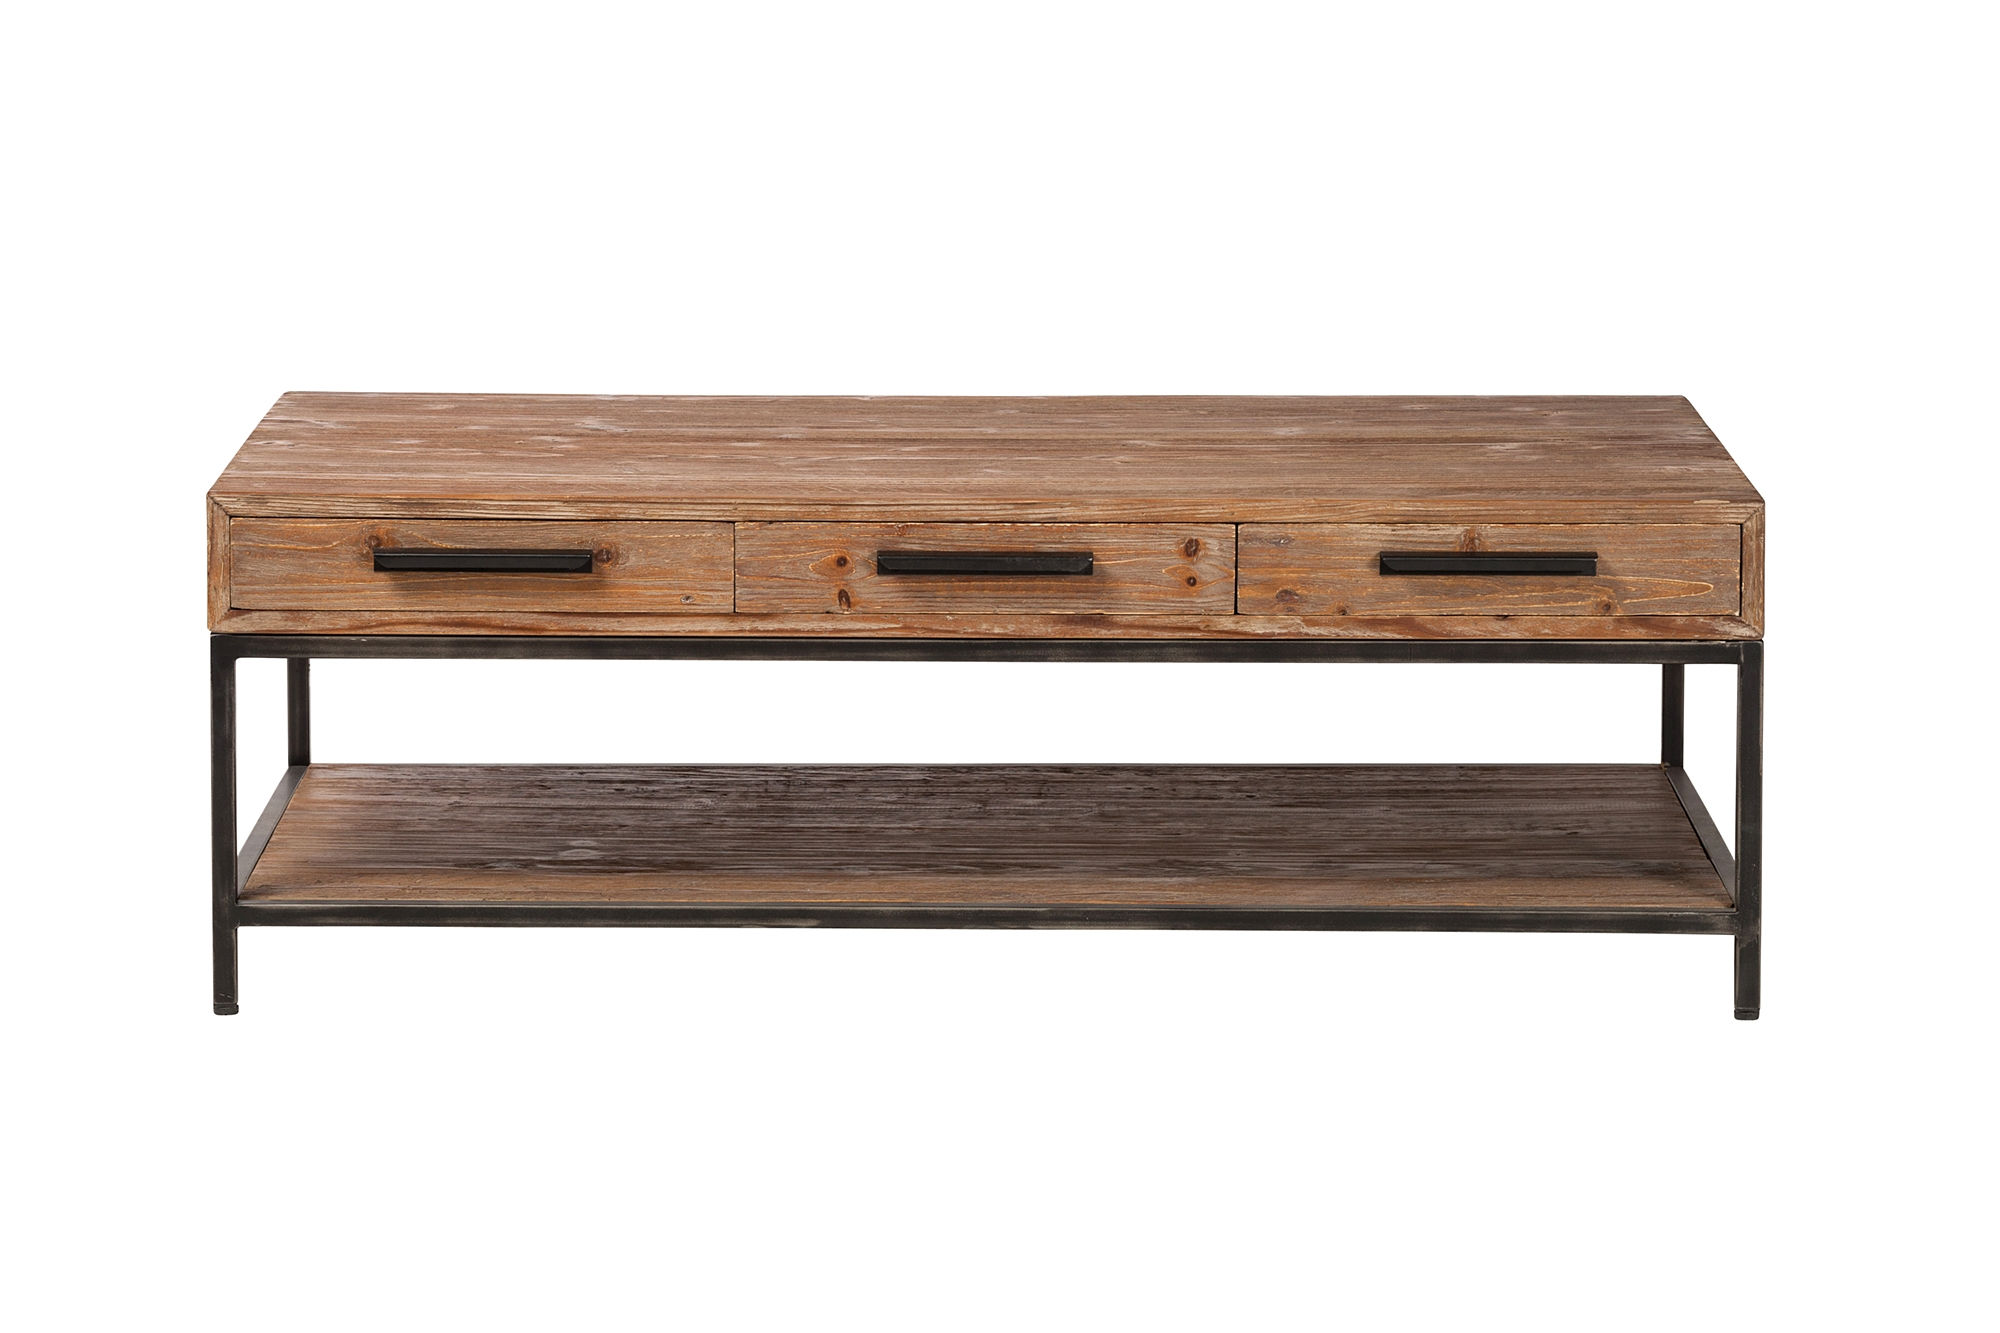 Elegant reclaimed 6 drawer coffee table the khazana home furnishings elegant reclaimed 6 drawer coffee table geotapseo Choice Image